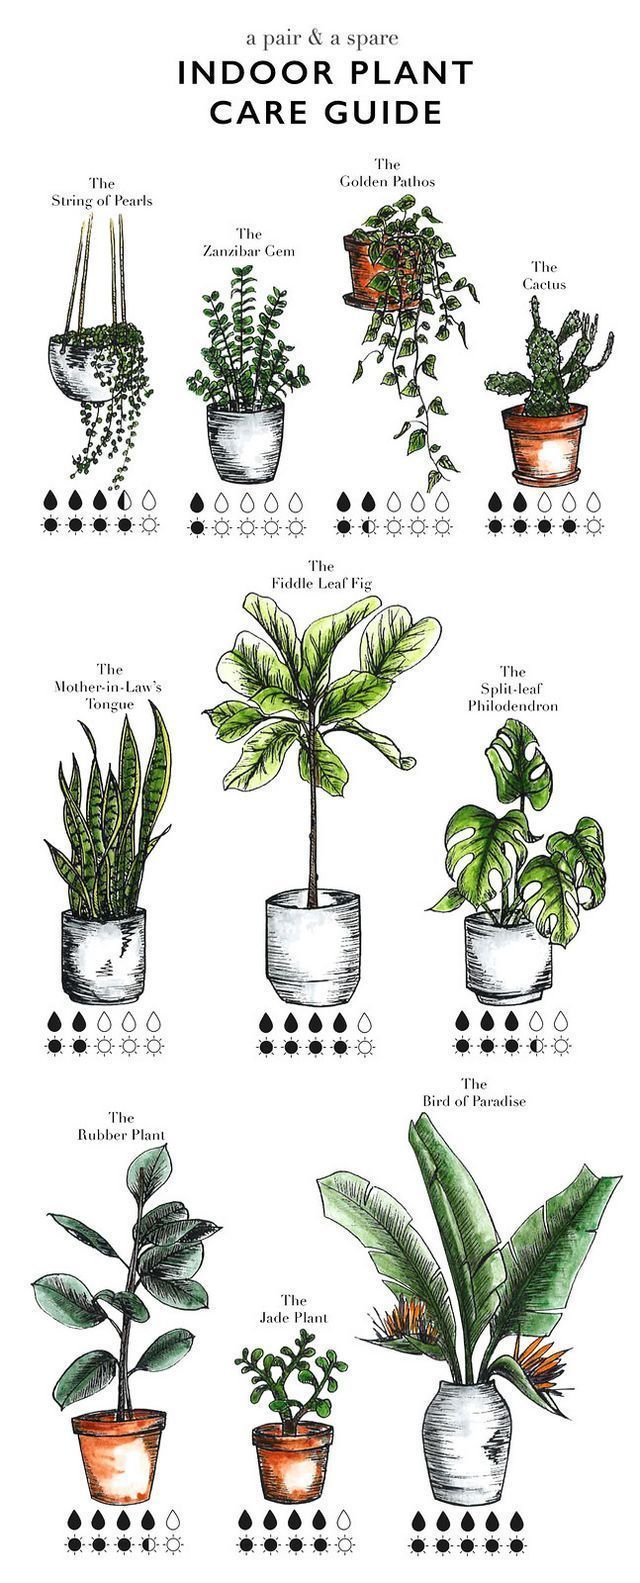 Care for houseplants (one pair & one spare part)#care #houseplants #pair #part #spare